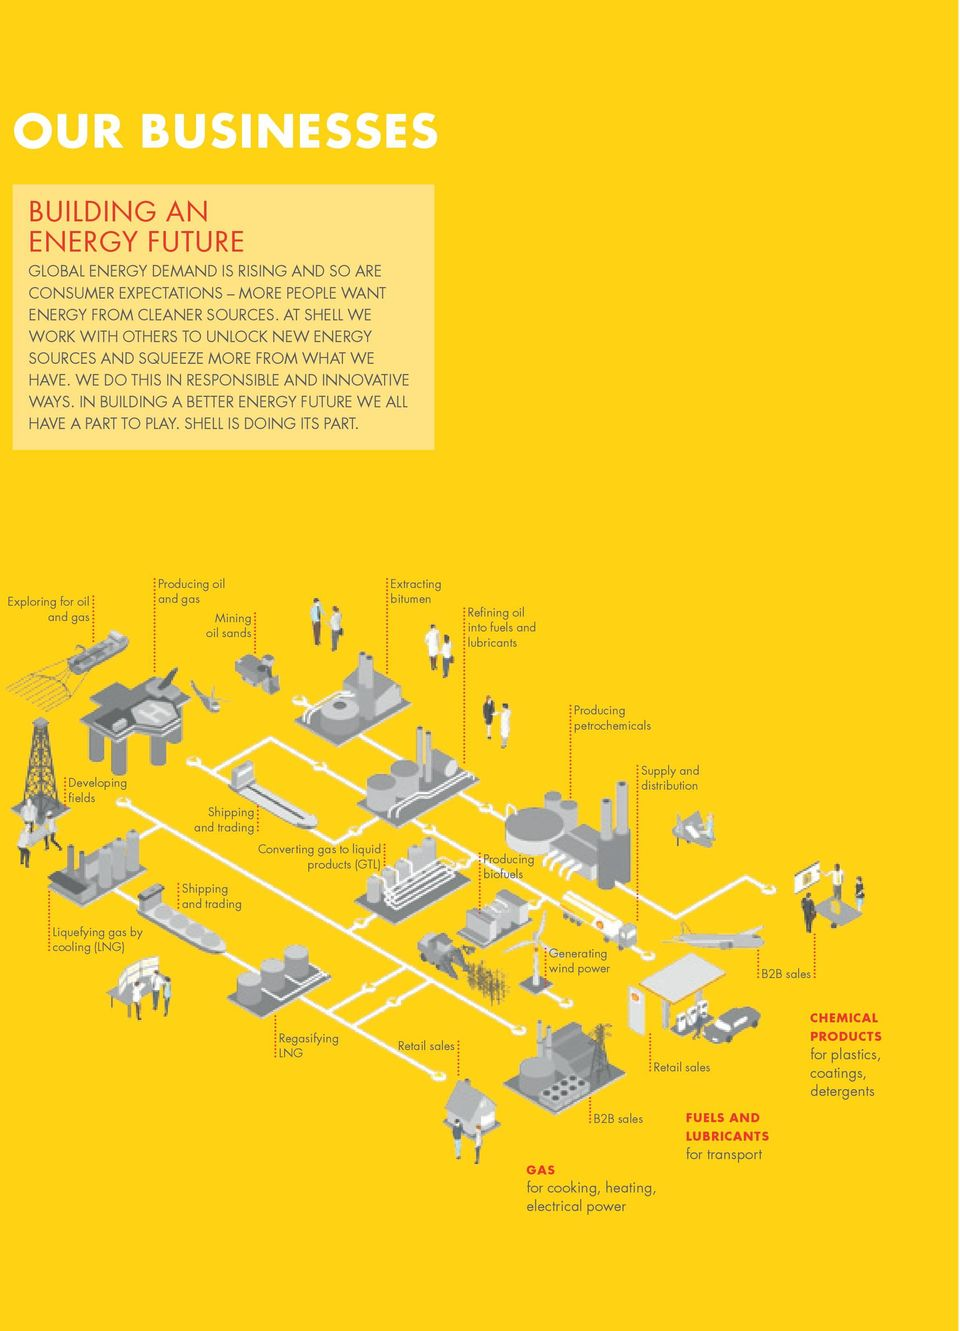 In building a better energy future we all have a part to play. Shell is doing its part.